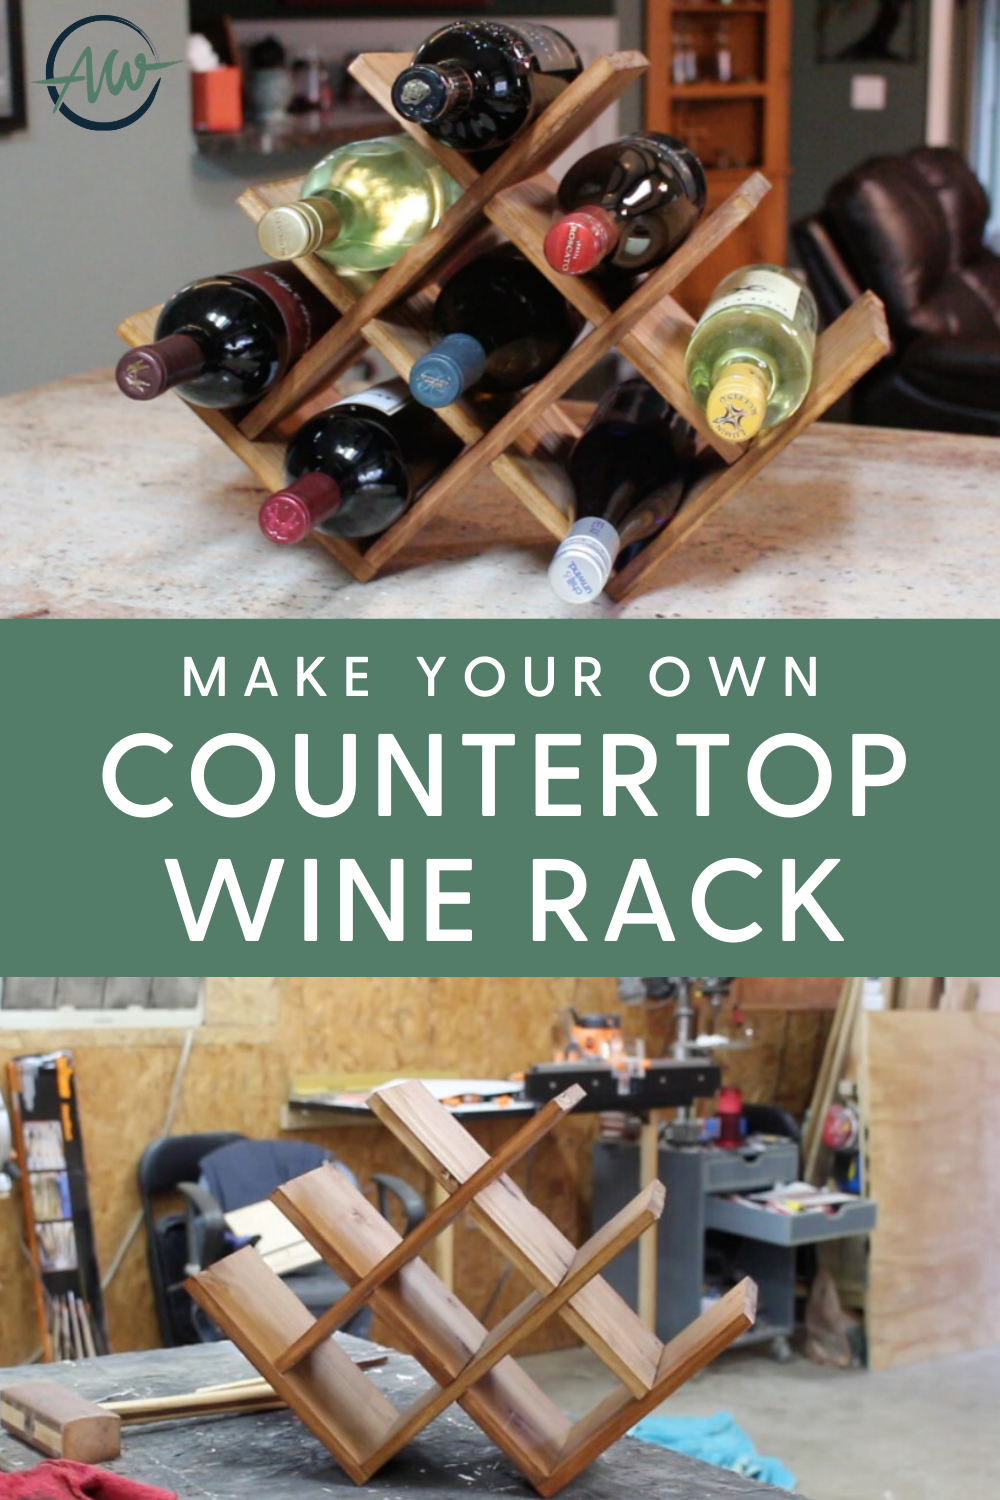 Diy Countertop Wine Rack Countertop Wine Rack Wine Rack Diy